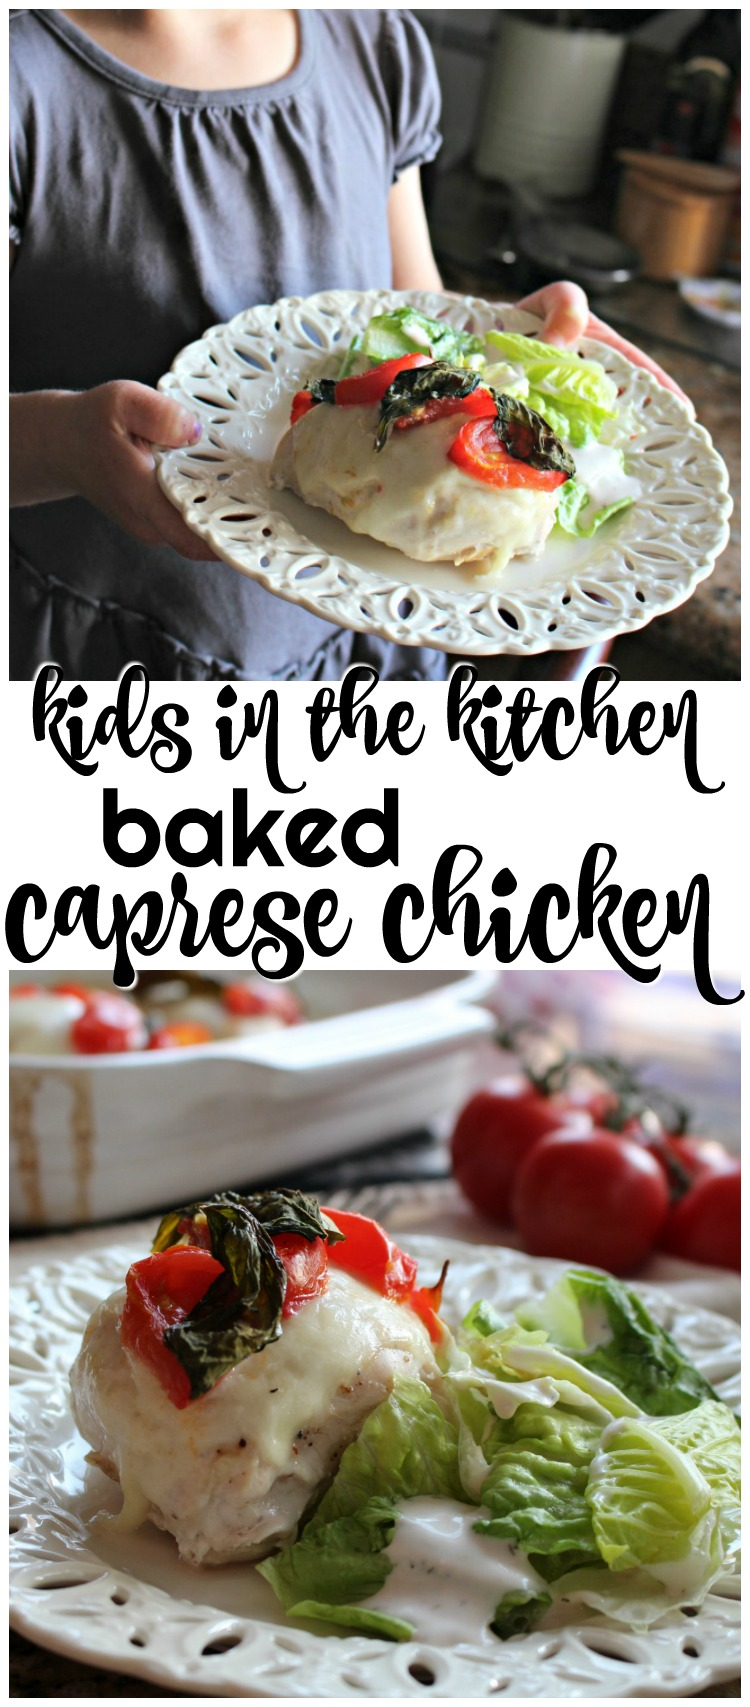 This baked caprese chicken is full of fresh flavor straight from the garden! And our 3 year old helped prepare the dish from start to finish. AD